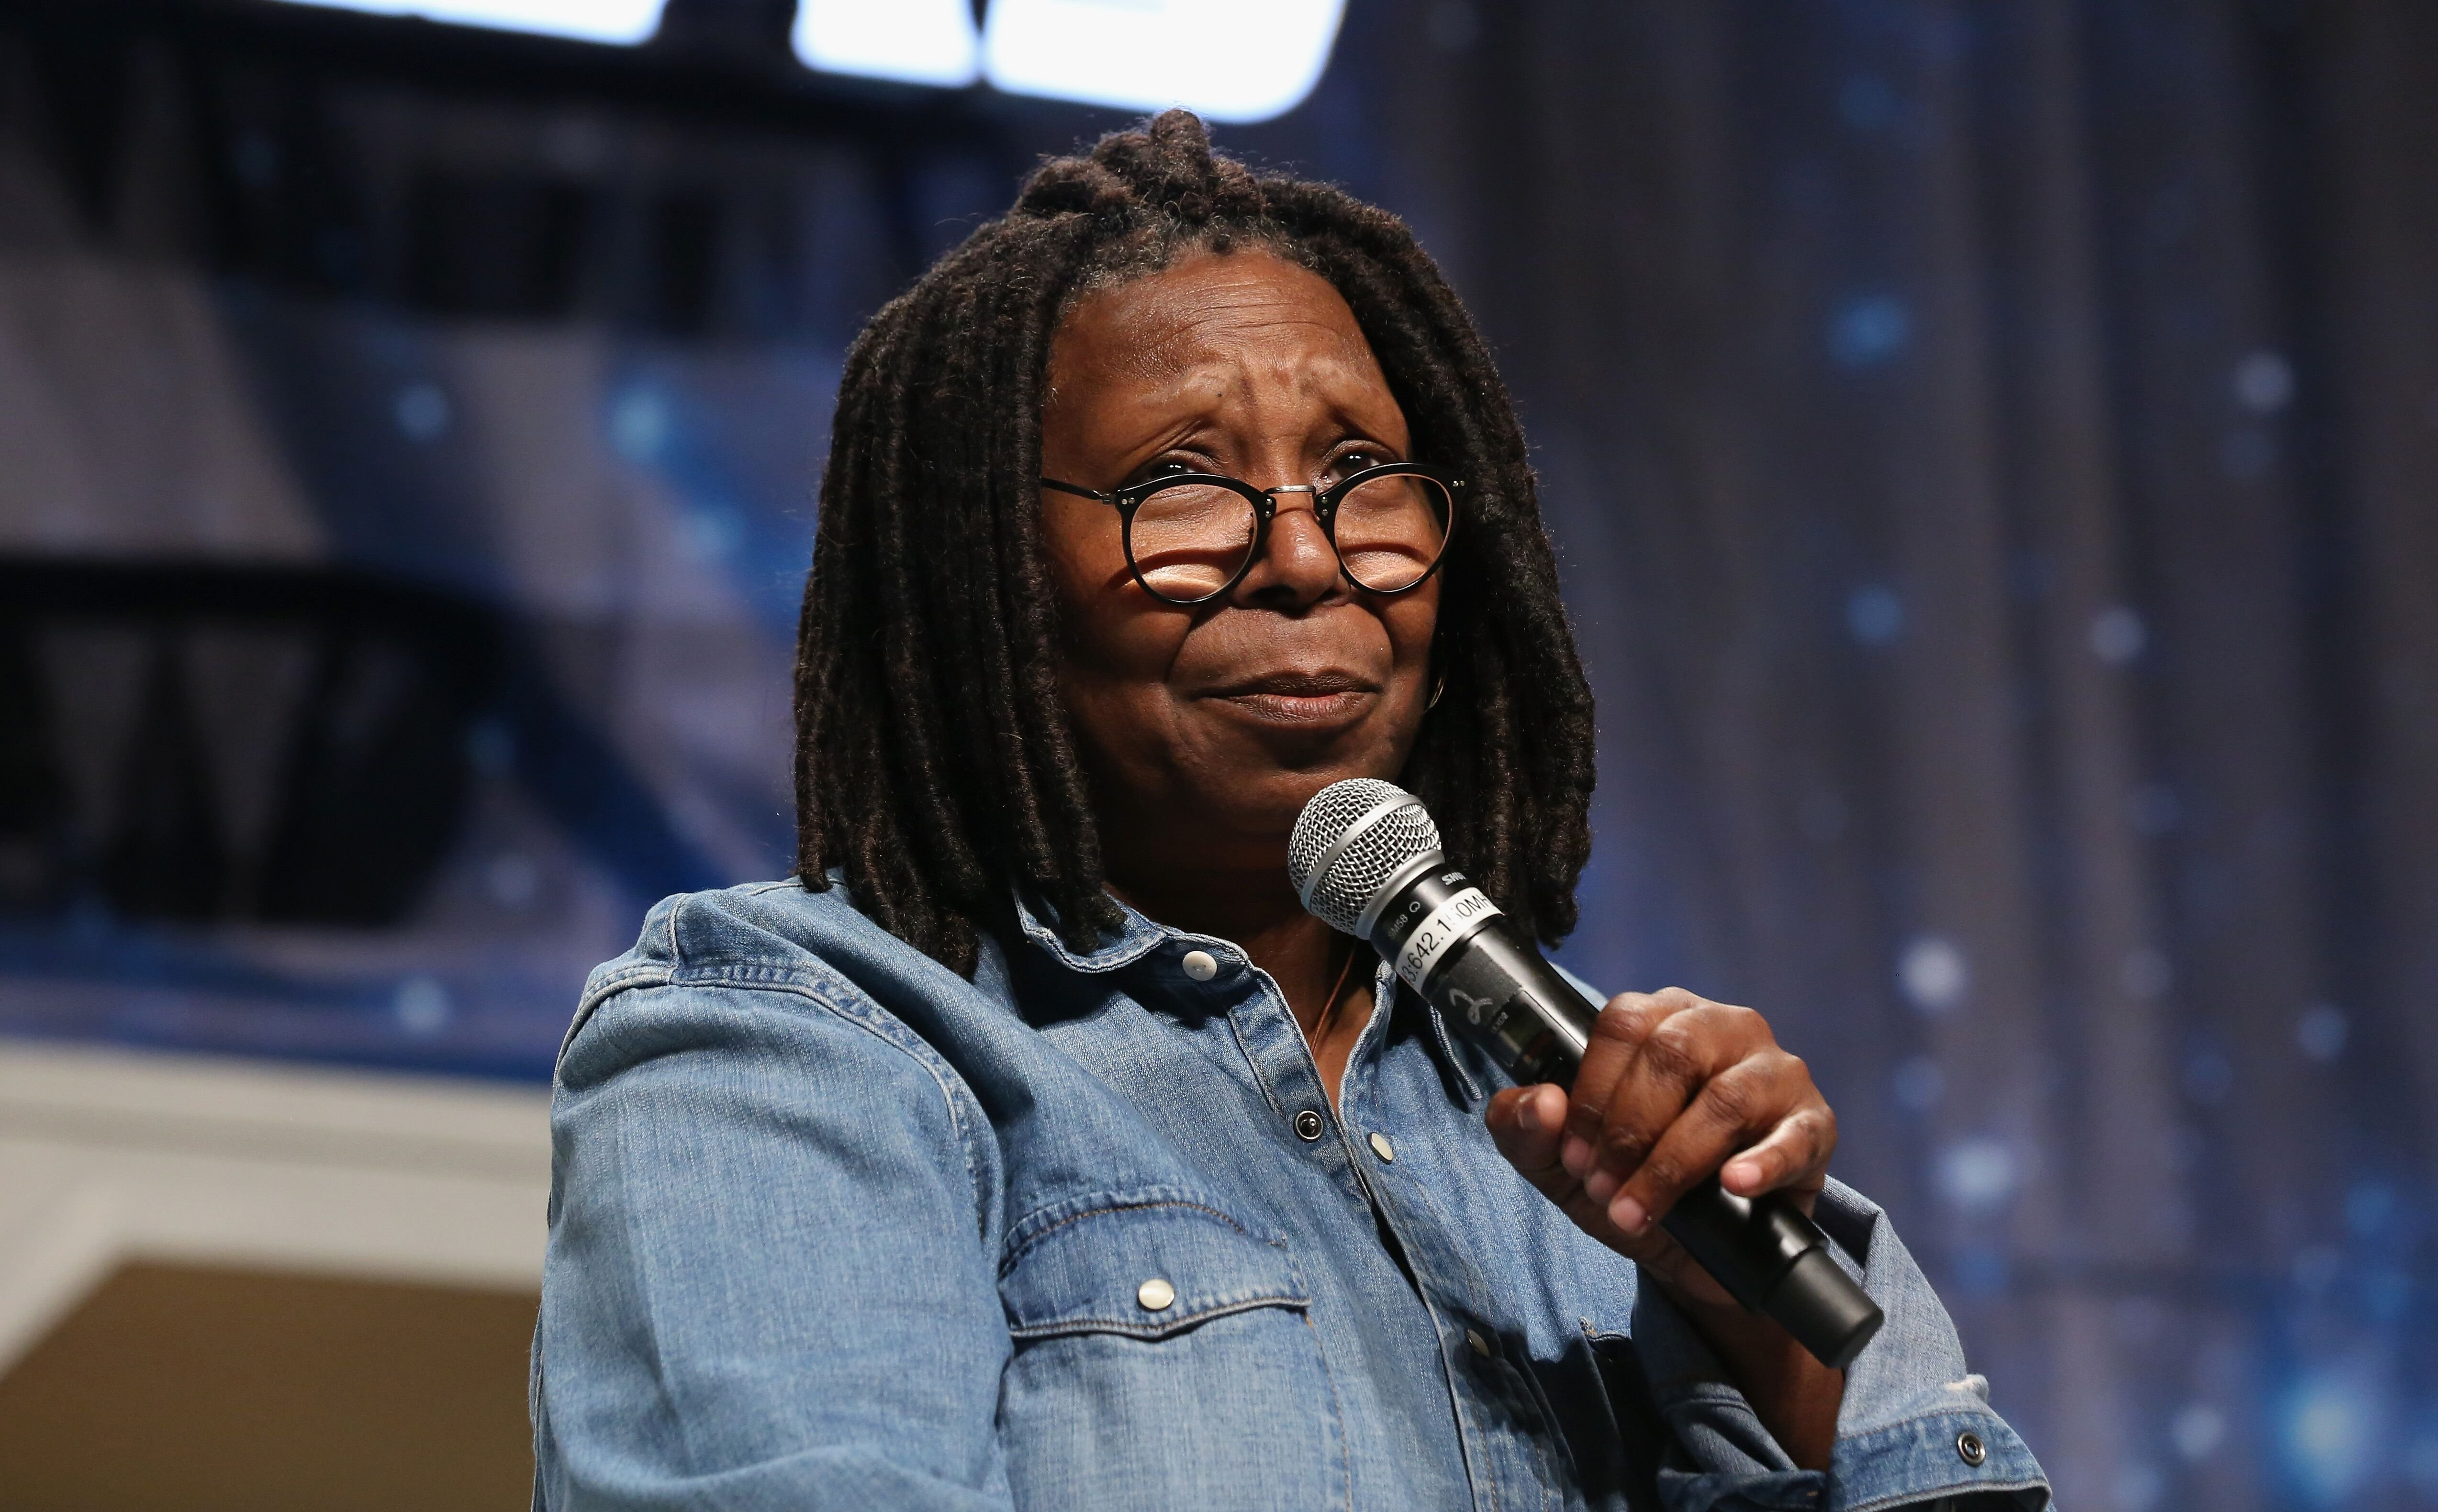 Whoopi Goldberg at the 15th annual official Star Trek convention on Aug. 4, 2016 in Las Vegas | Source: Getty Images